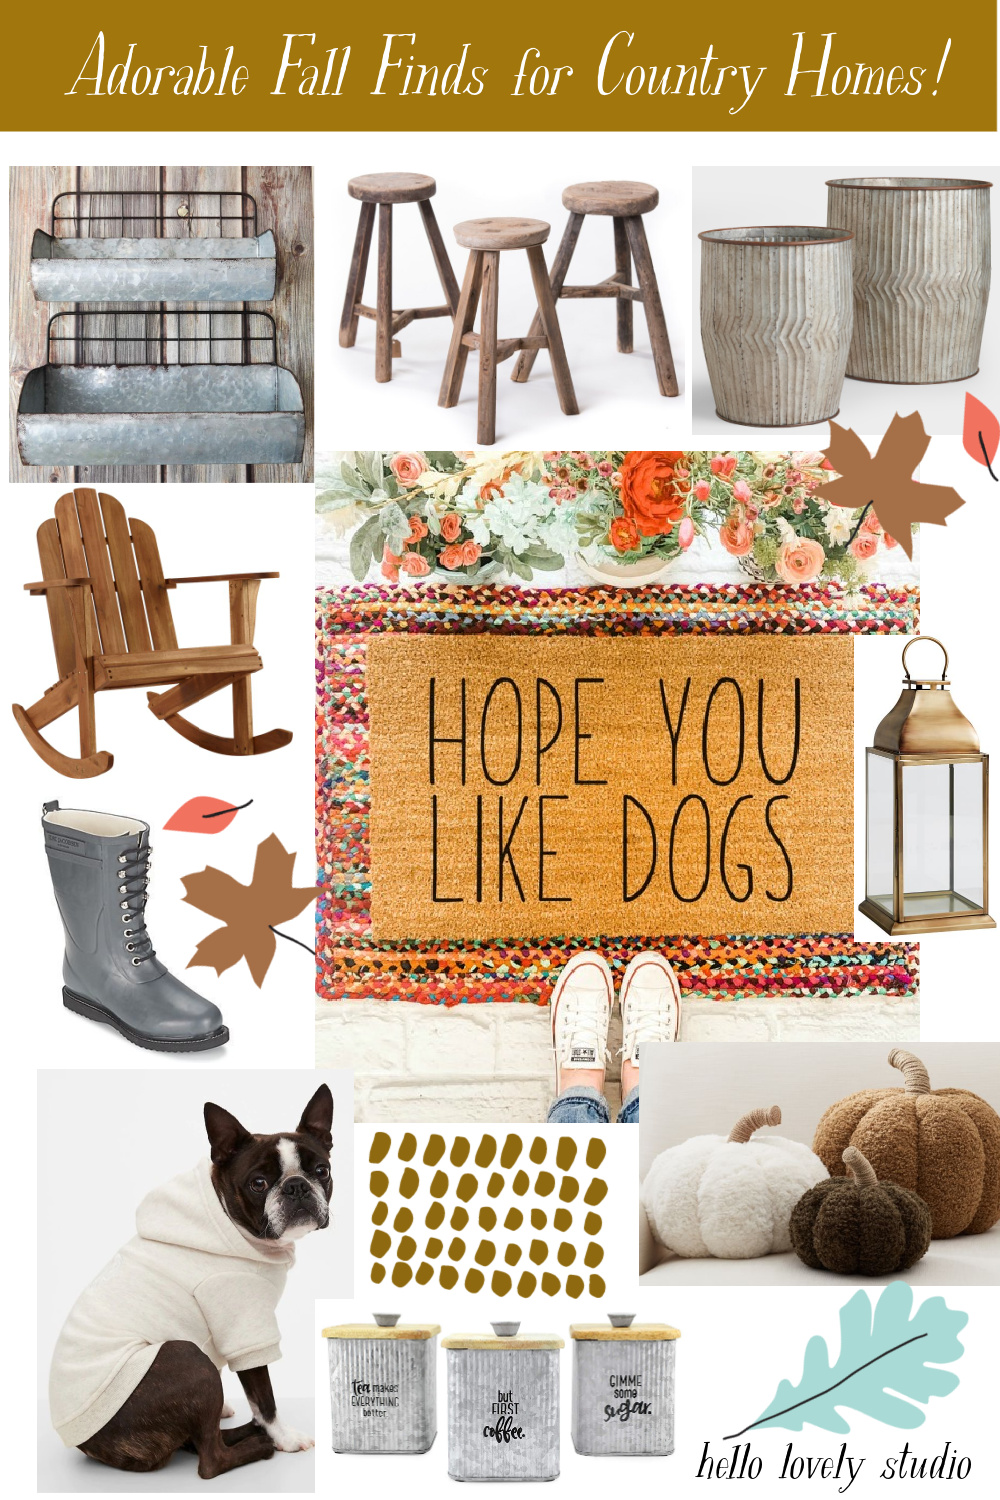 Adorable fall finds for country homes - Hello Lovely Studio. #falldecor #autumndecor #homedecor #countrydecorating #decoratingideas